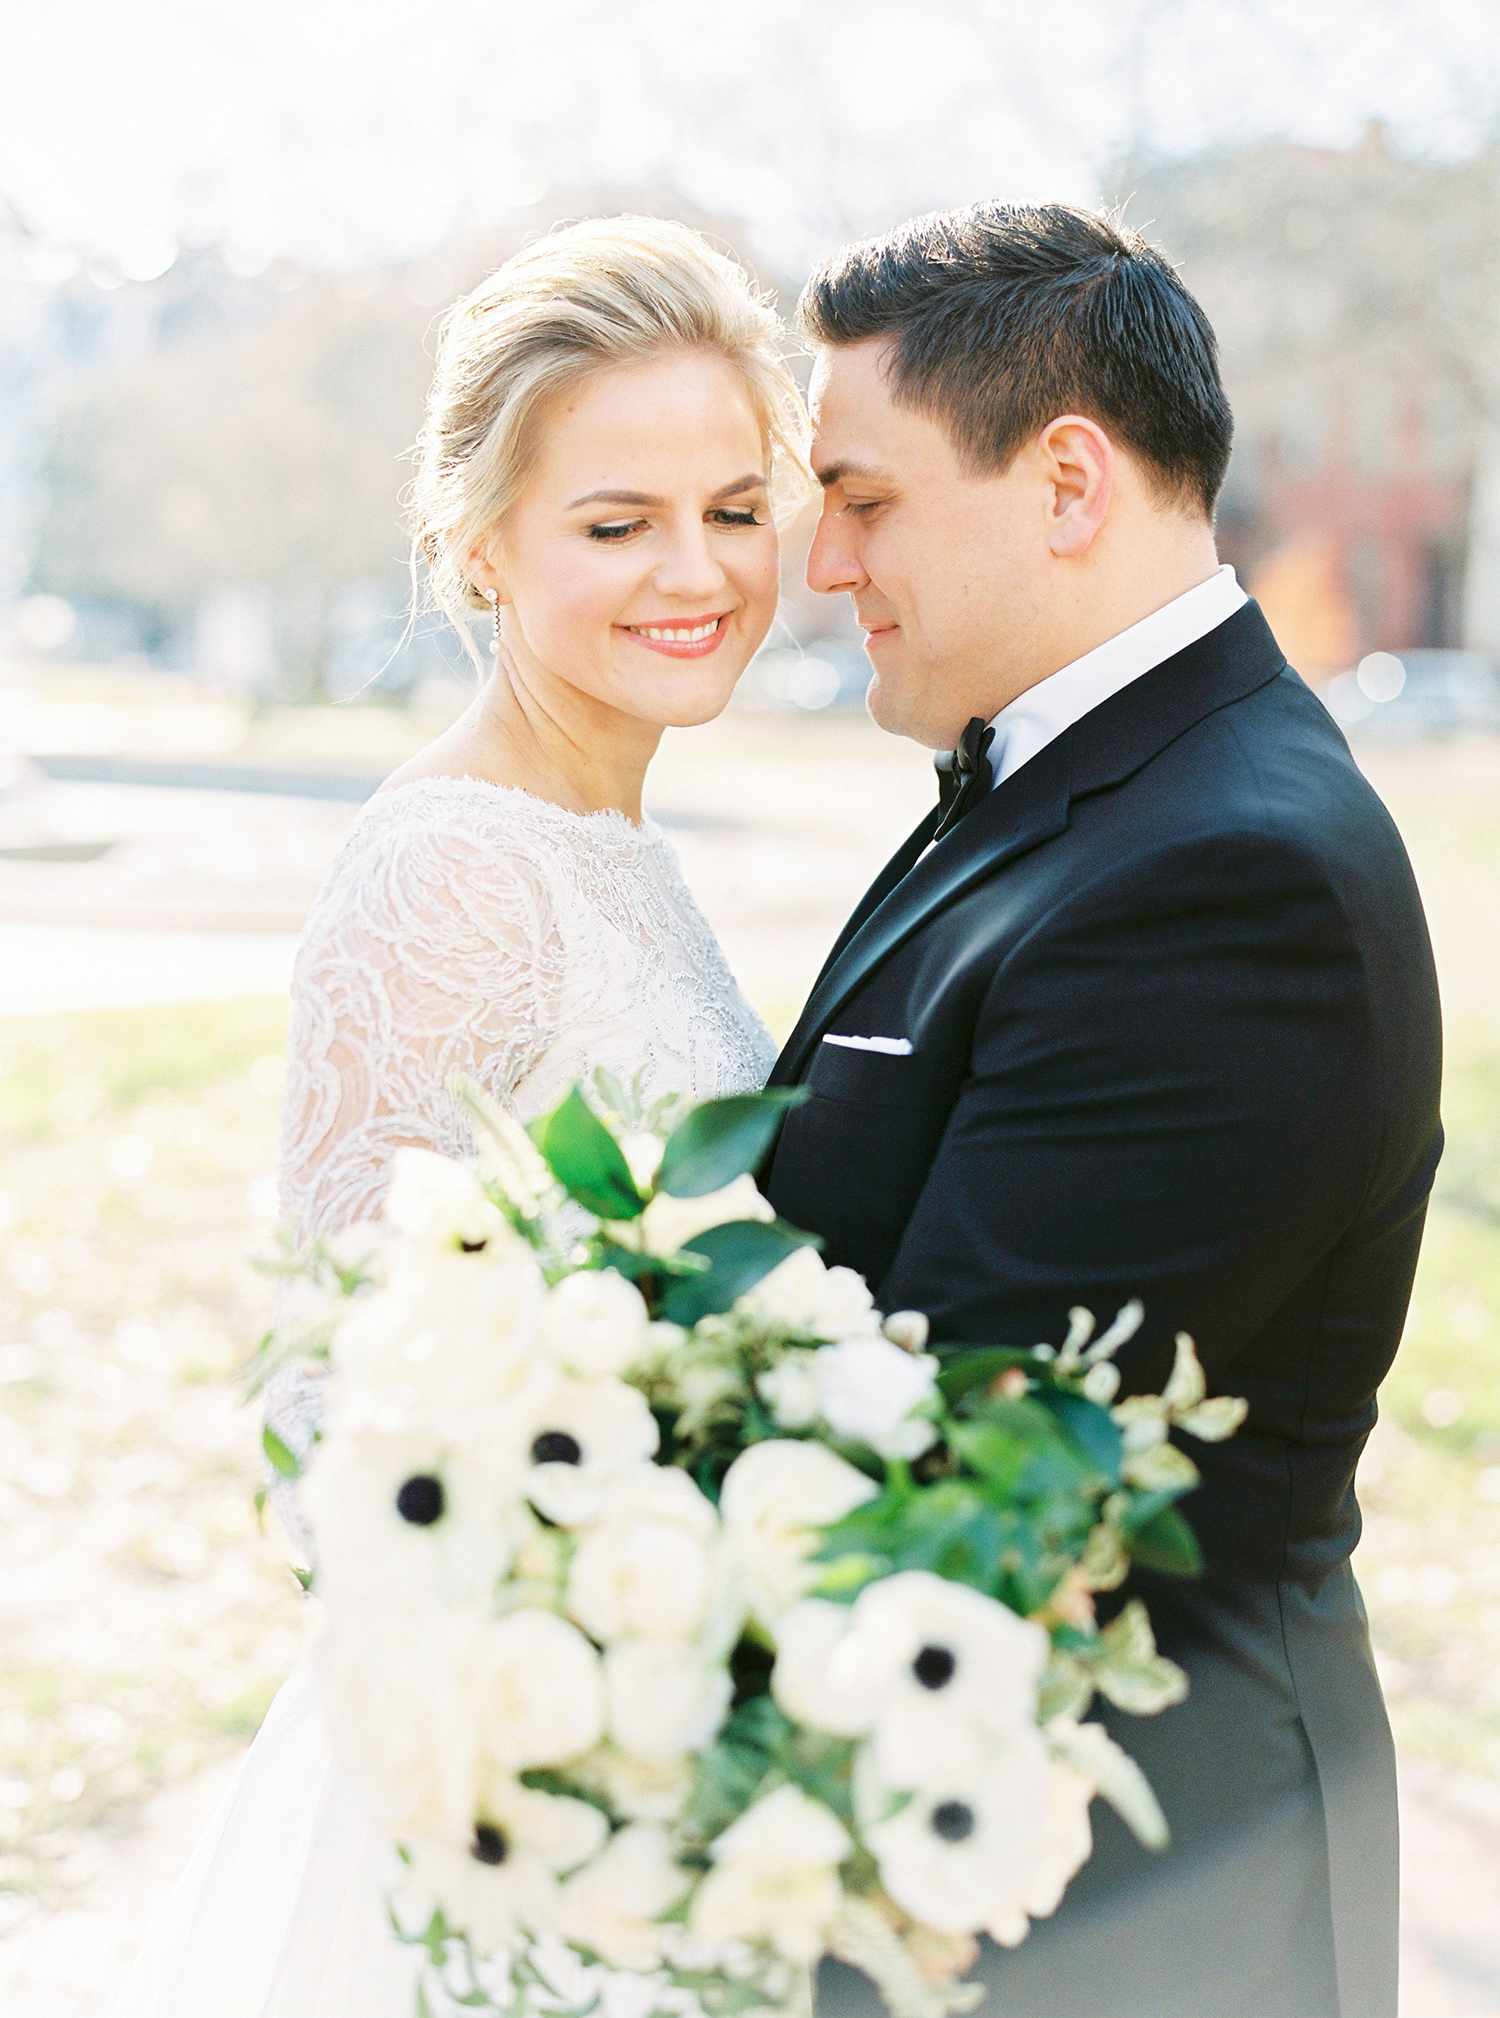 Wedding portraits on this Winter city wedding in the heart of Washington DC